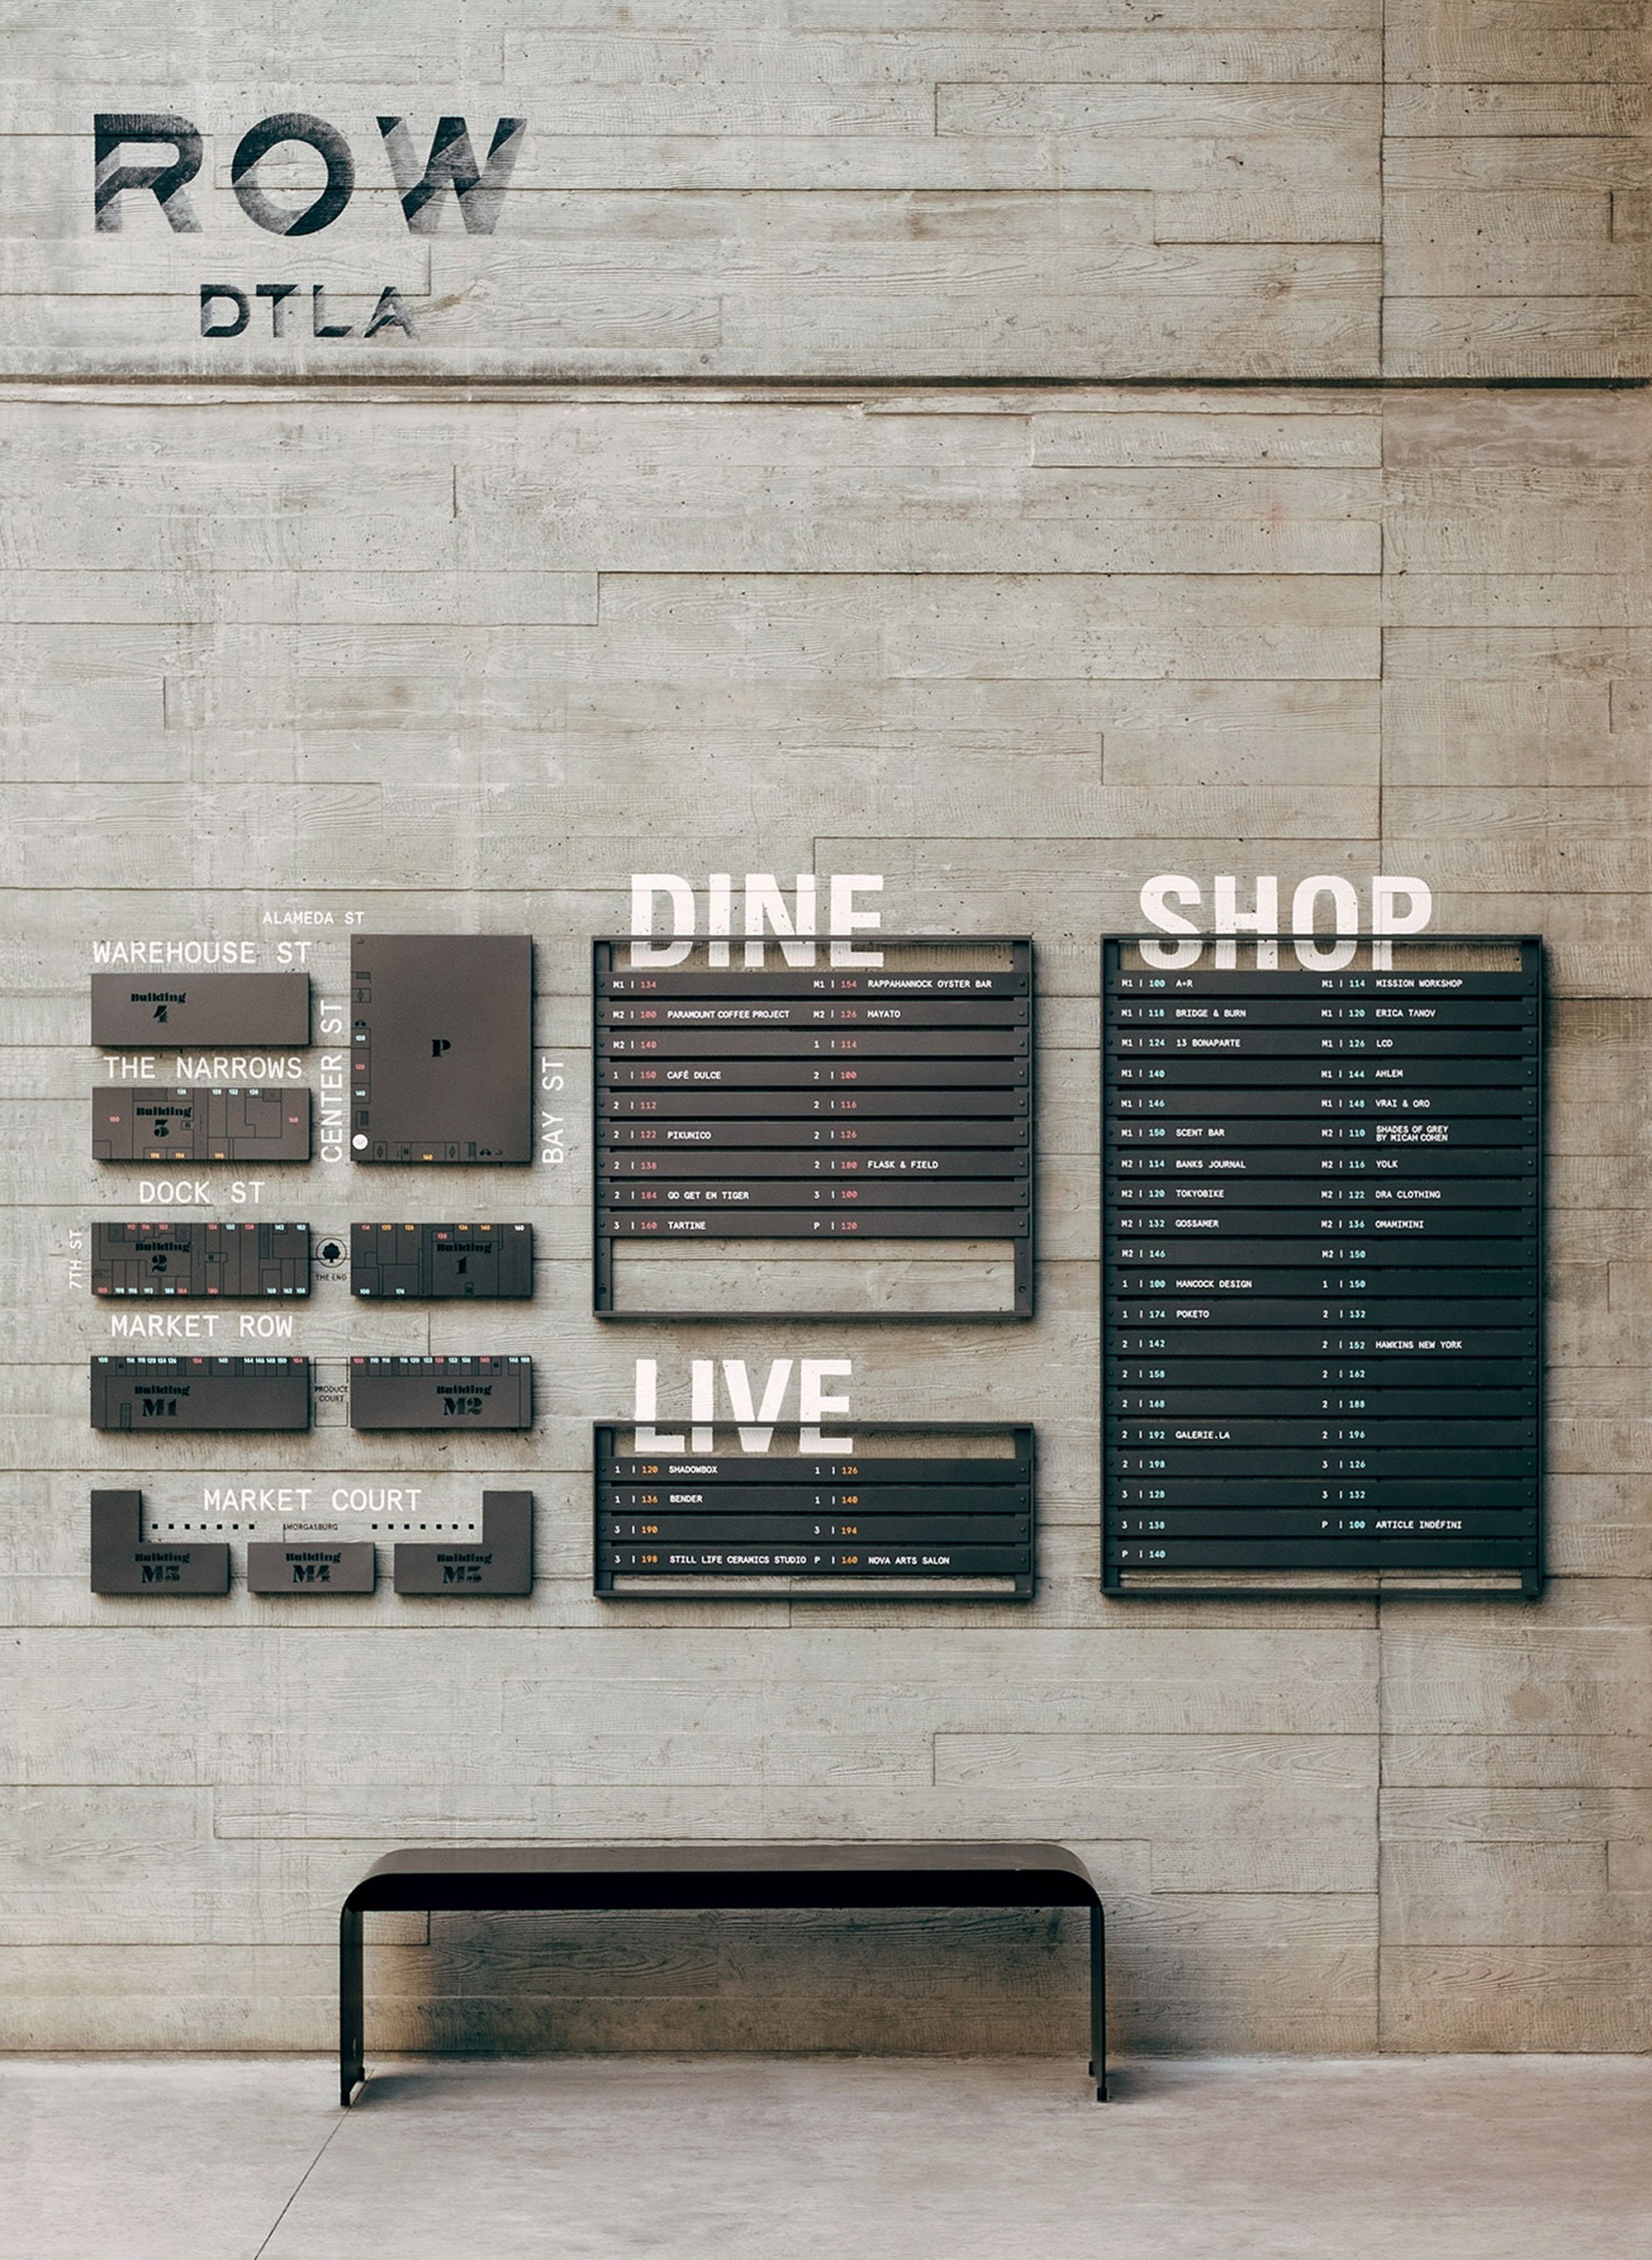 Row DTLA interior signage and directions with custom engraved logo, branding by RoAndCo